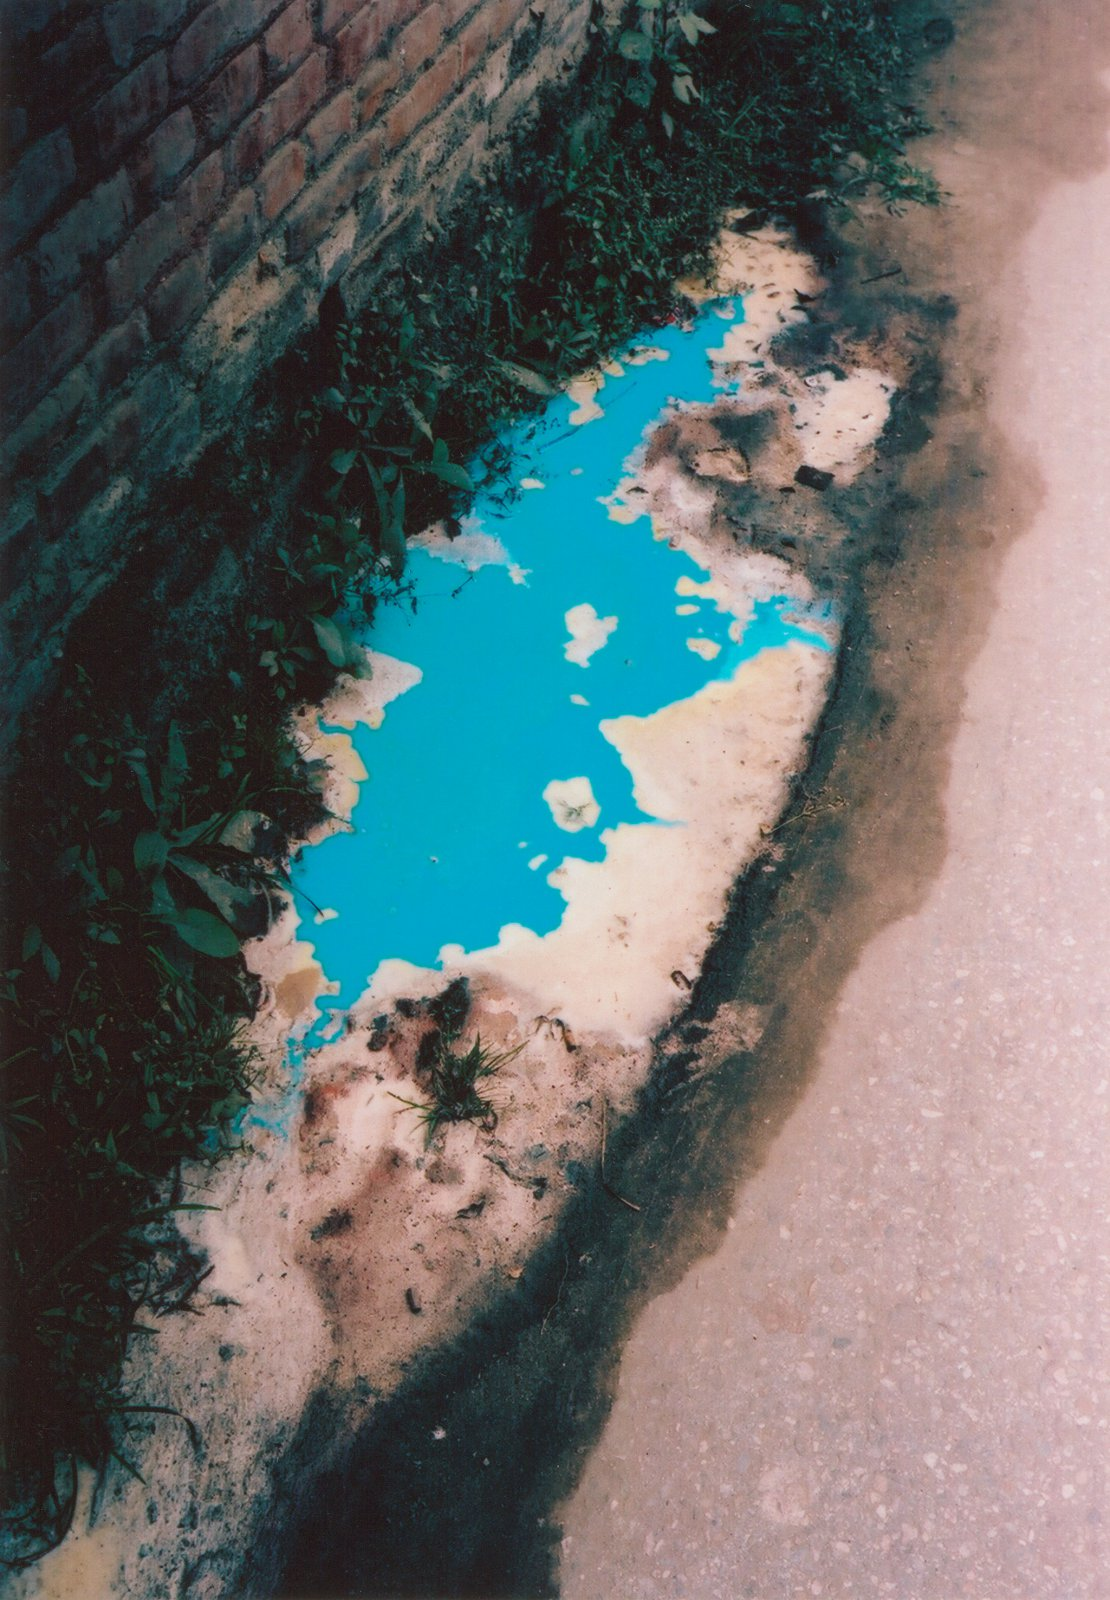 Blue puddle, 2009, Kathmandu (Nepal), from the series As Dust Alights  © Vincent Delbrouck, courtesy of STIEGLITZ19.